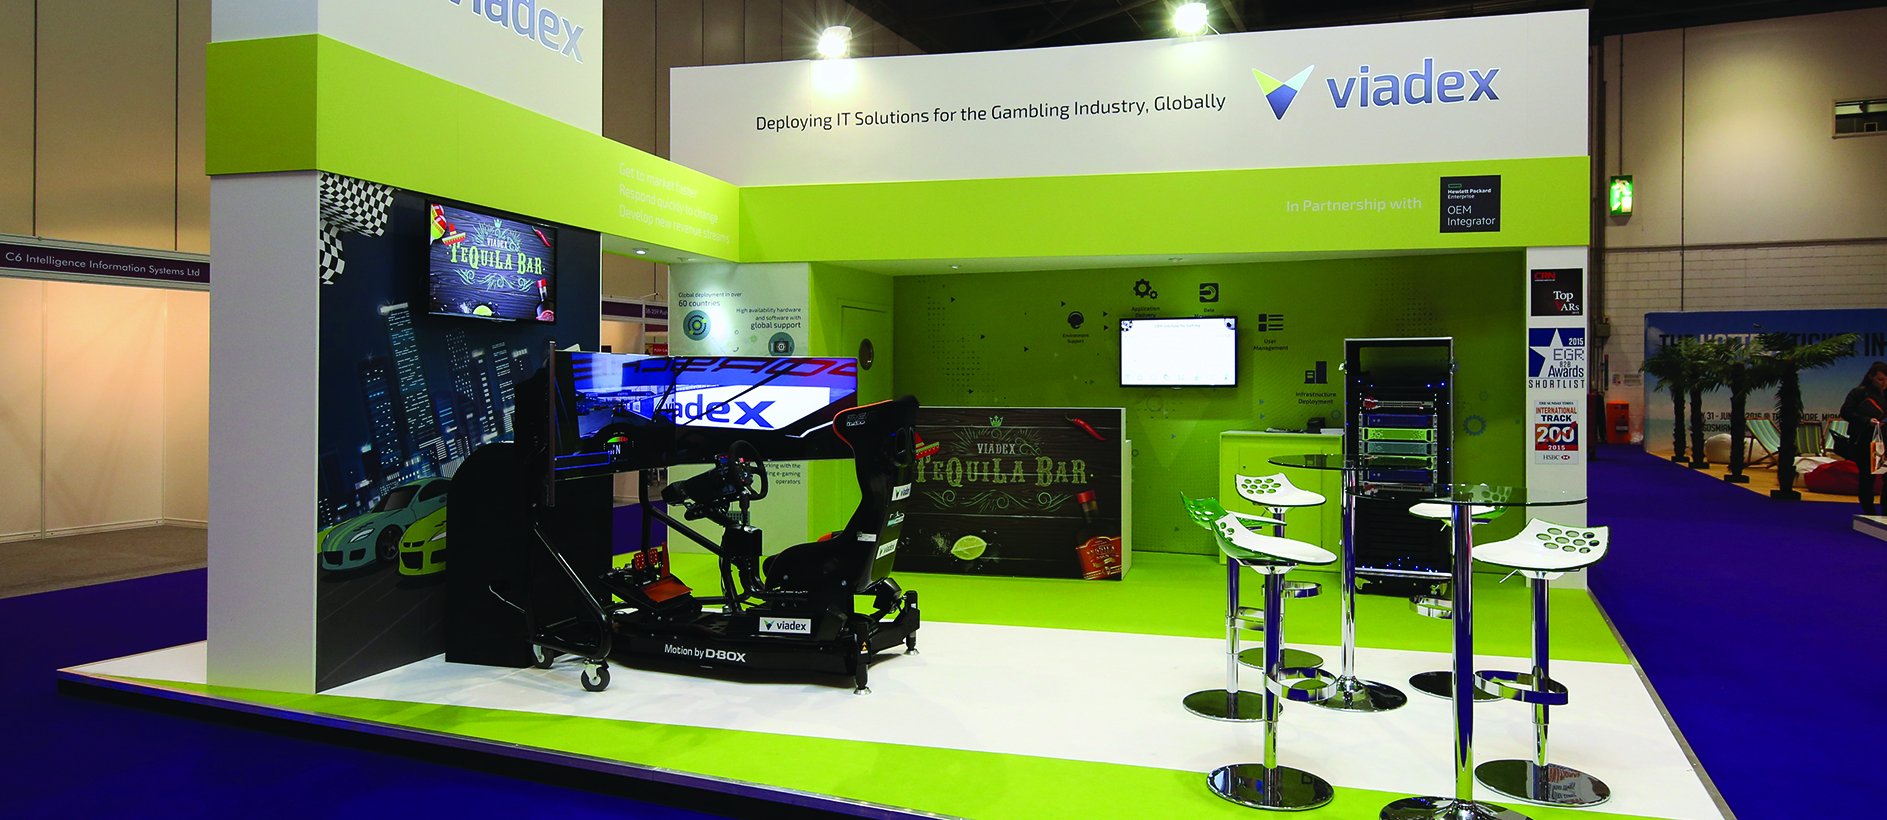 Colourful bespoke stand for Viadex by Exhibit 3Sixty